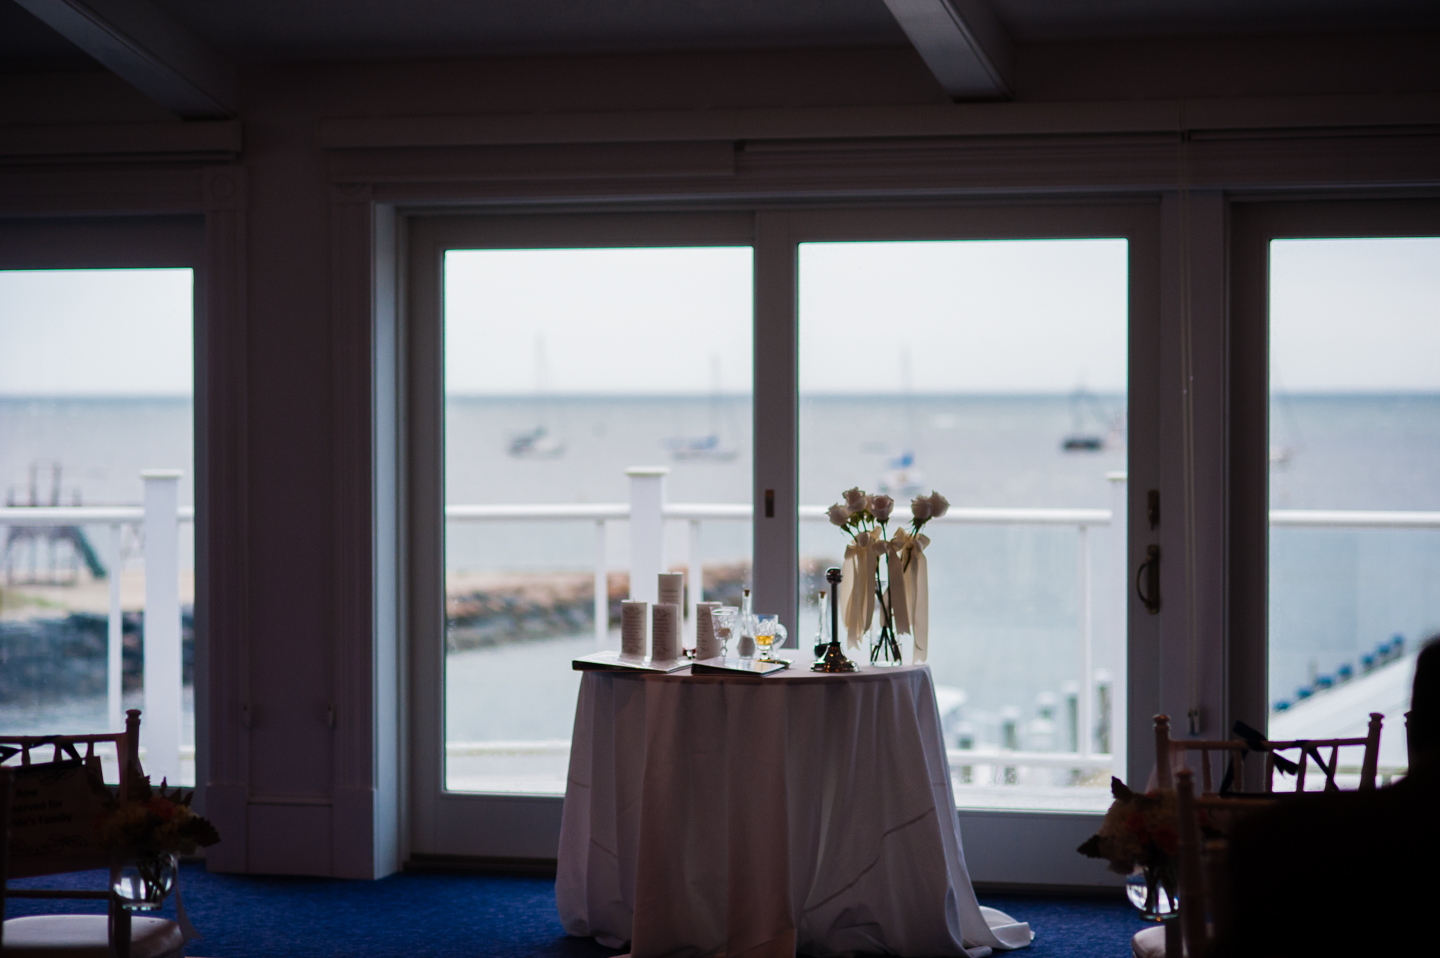 the ceremony took place in a ballroom overlooking the wychmere harbor